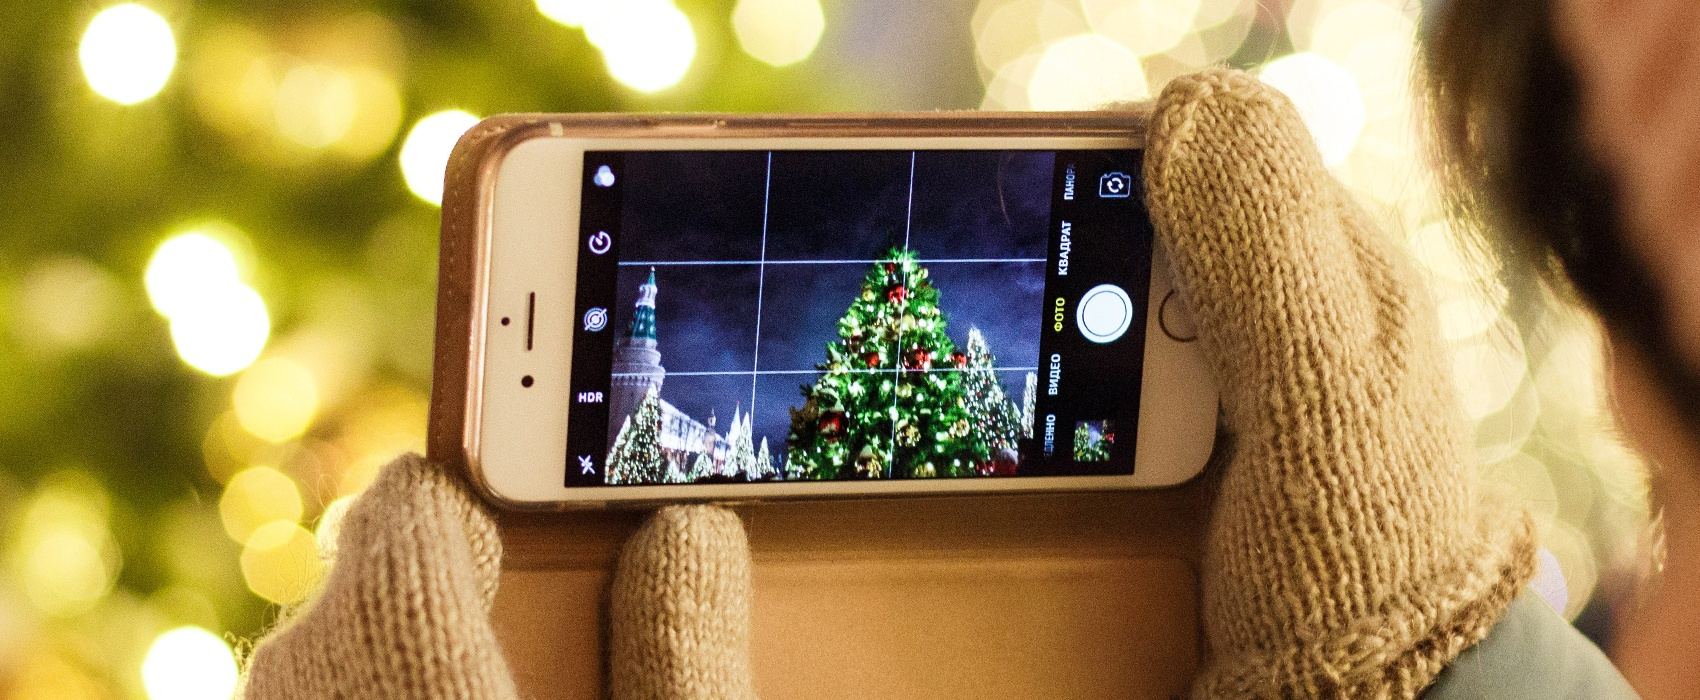 Christmas Video - Mobile MArketing Ideas